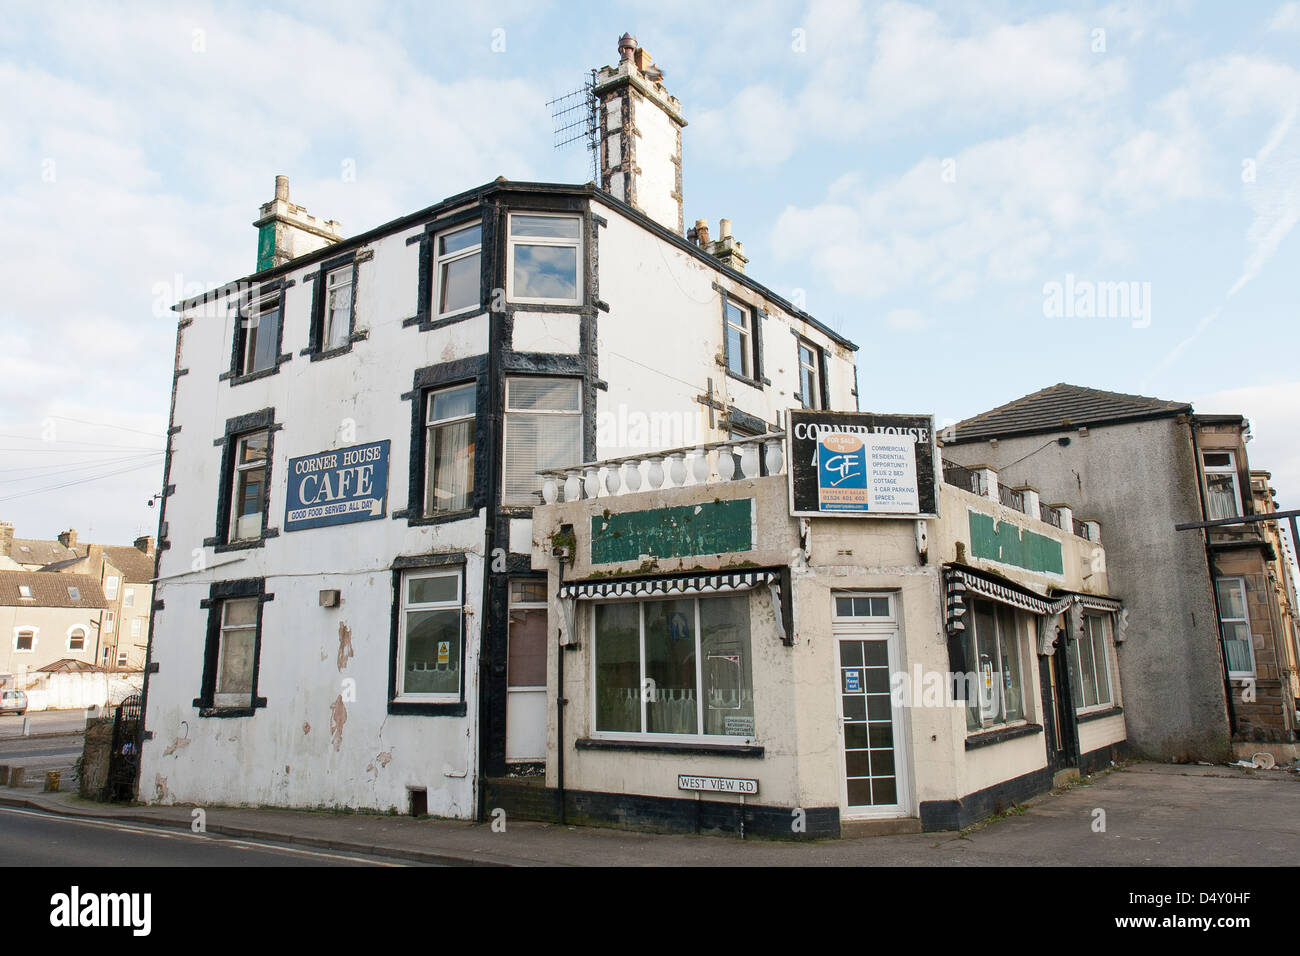 Morecambe Lancashire, England and a run down hotel and cafe - Stock Image